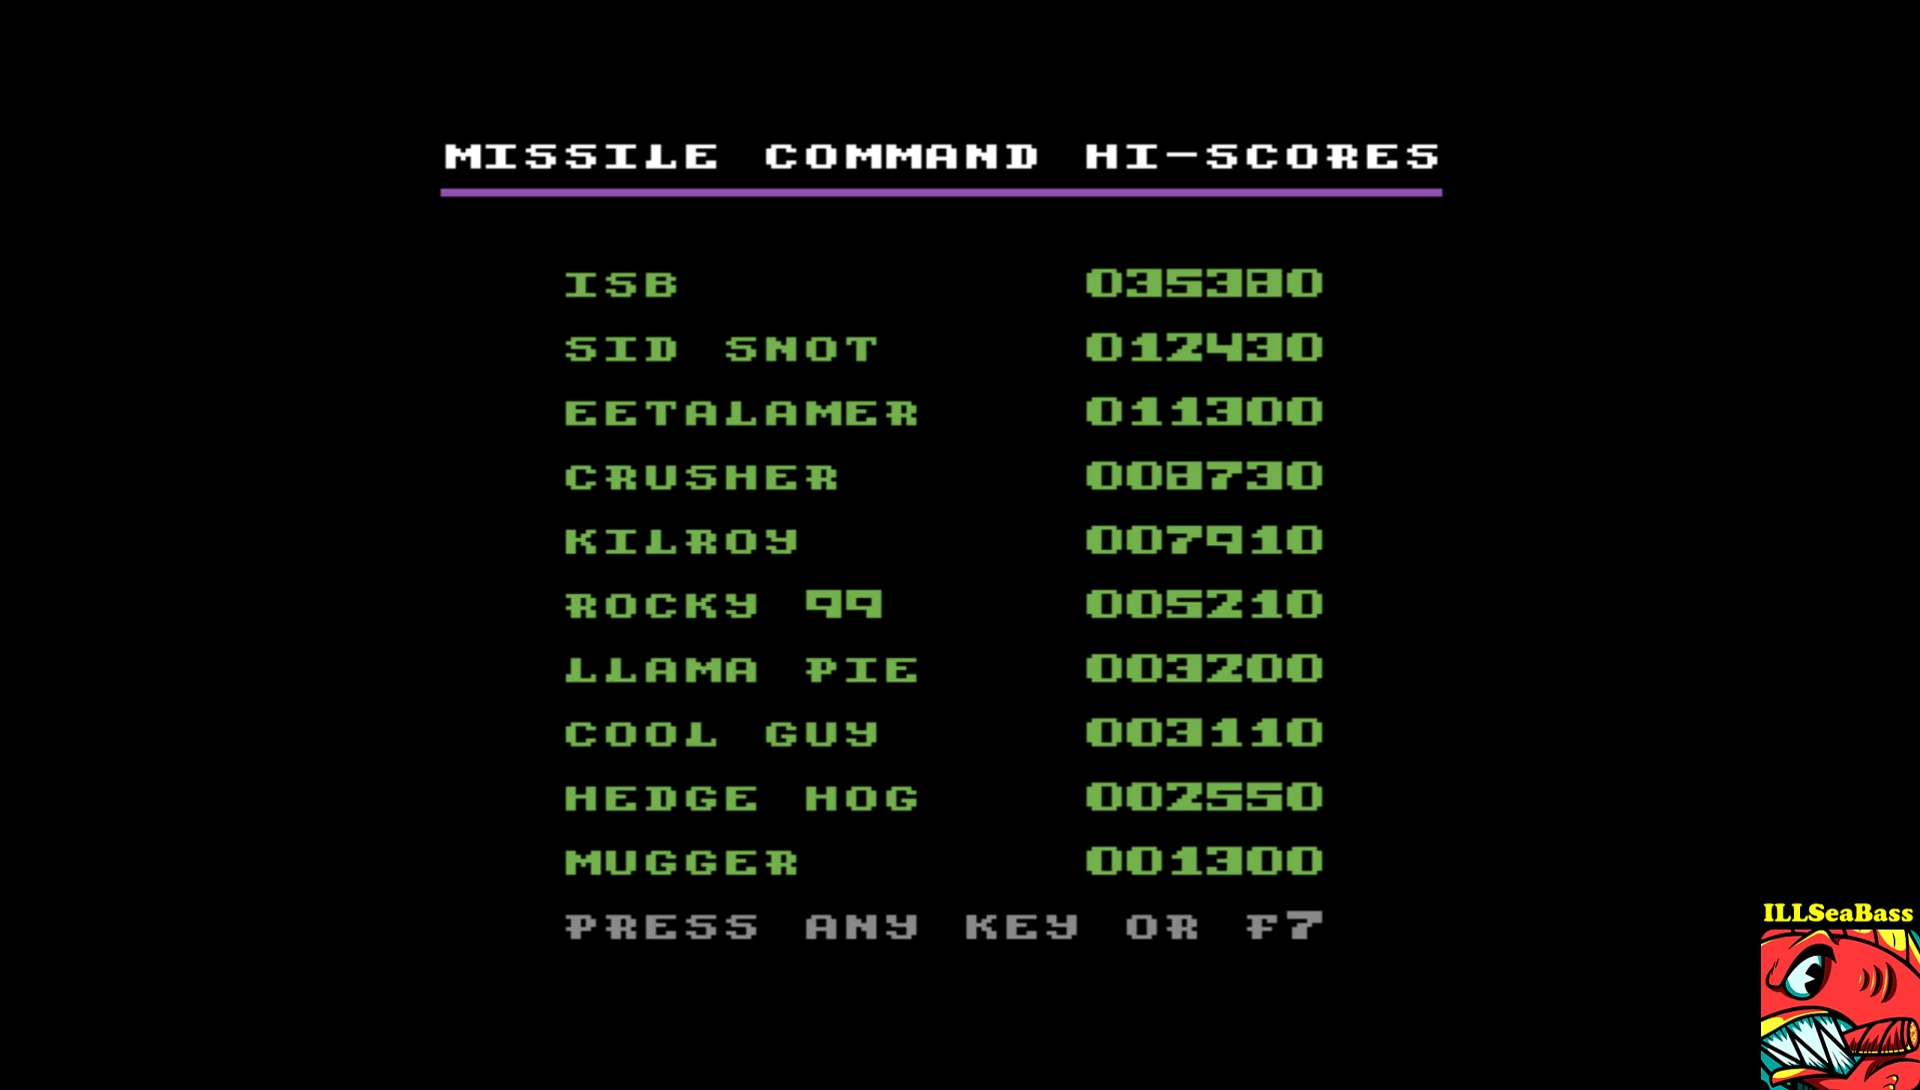 ILLSeaBass: Missile Command (Commodore 64 Emulated) 35,380 points on 2017-04-24 00:05:58